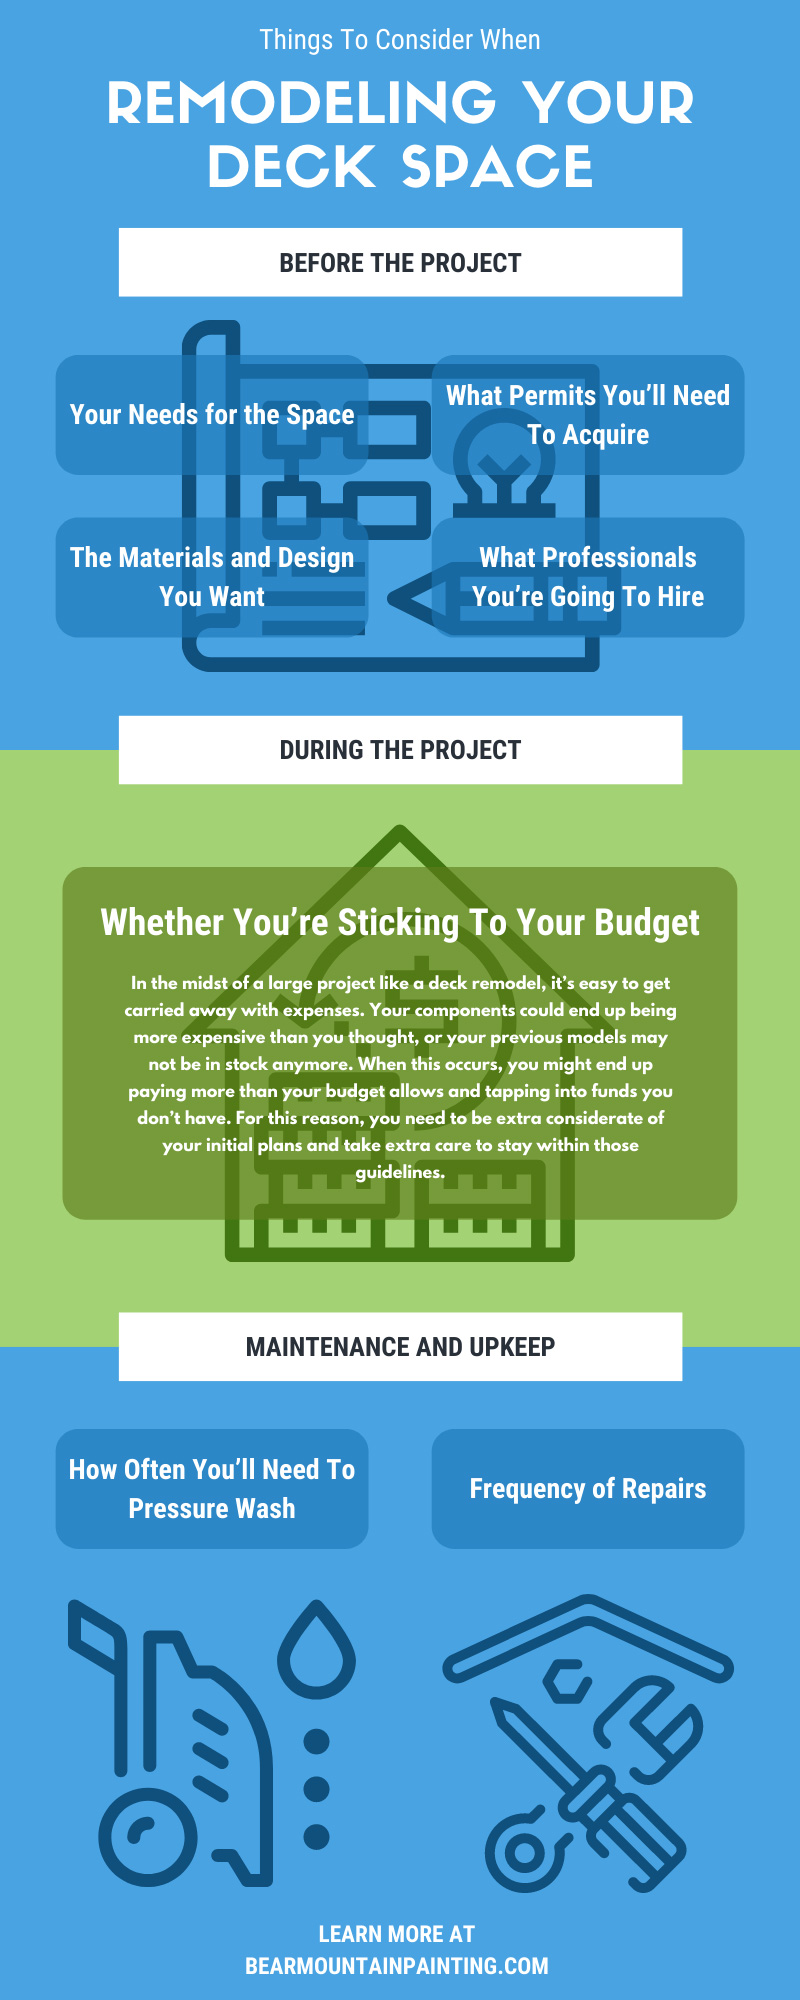 Things to Consider When Remodeling You Deck Space